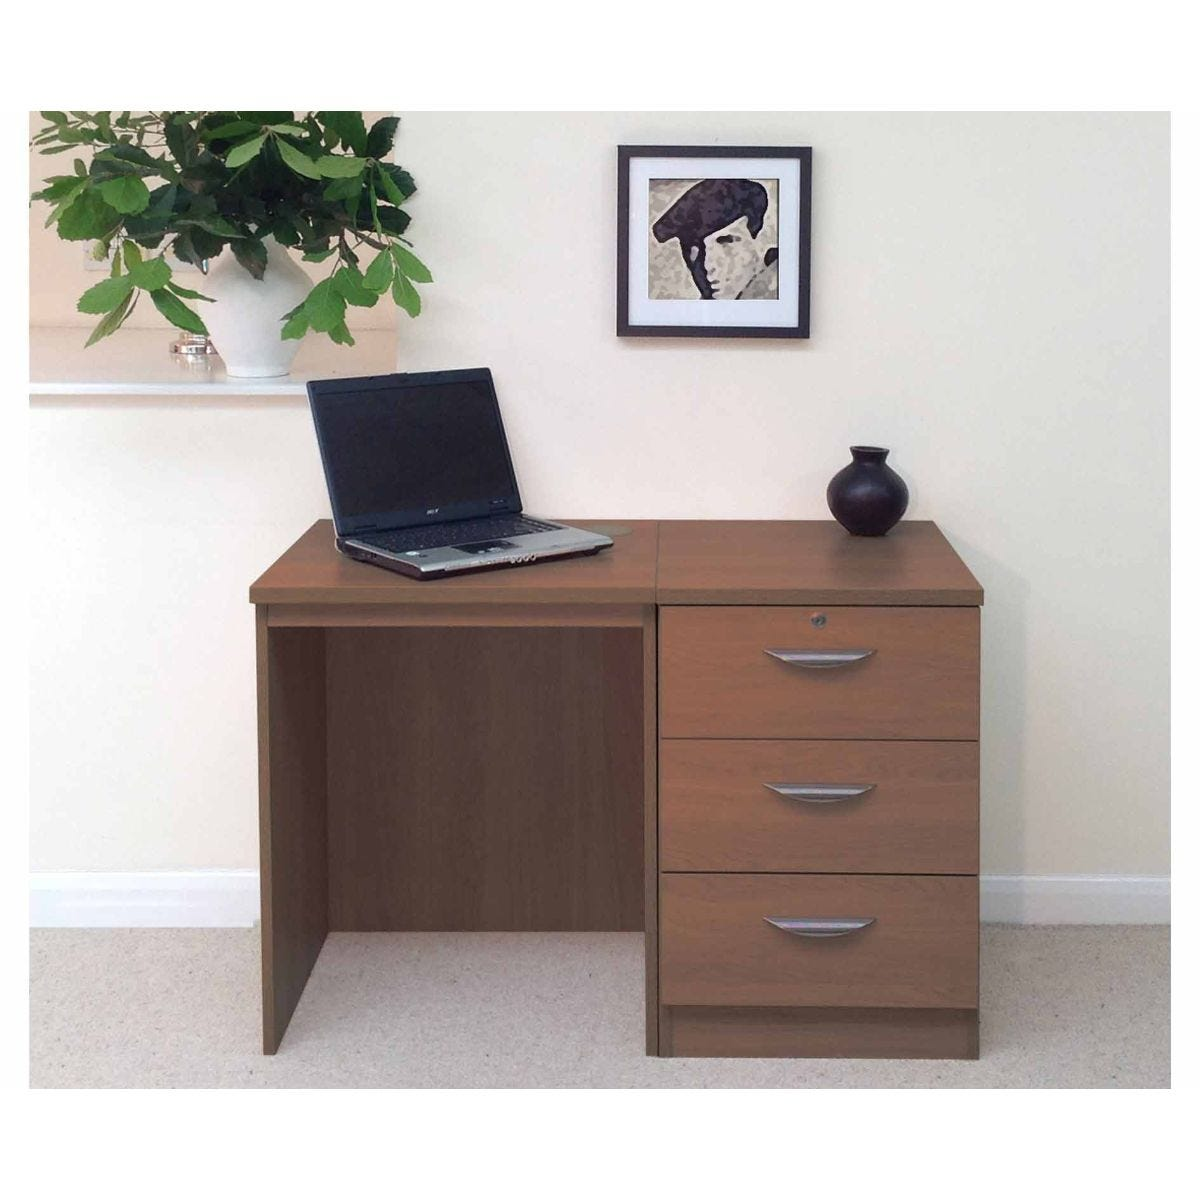 R White Home Office Desk with 3 Drawers, Teak